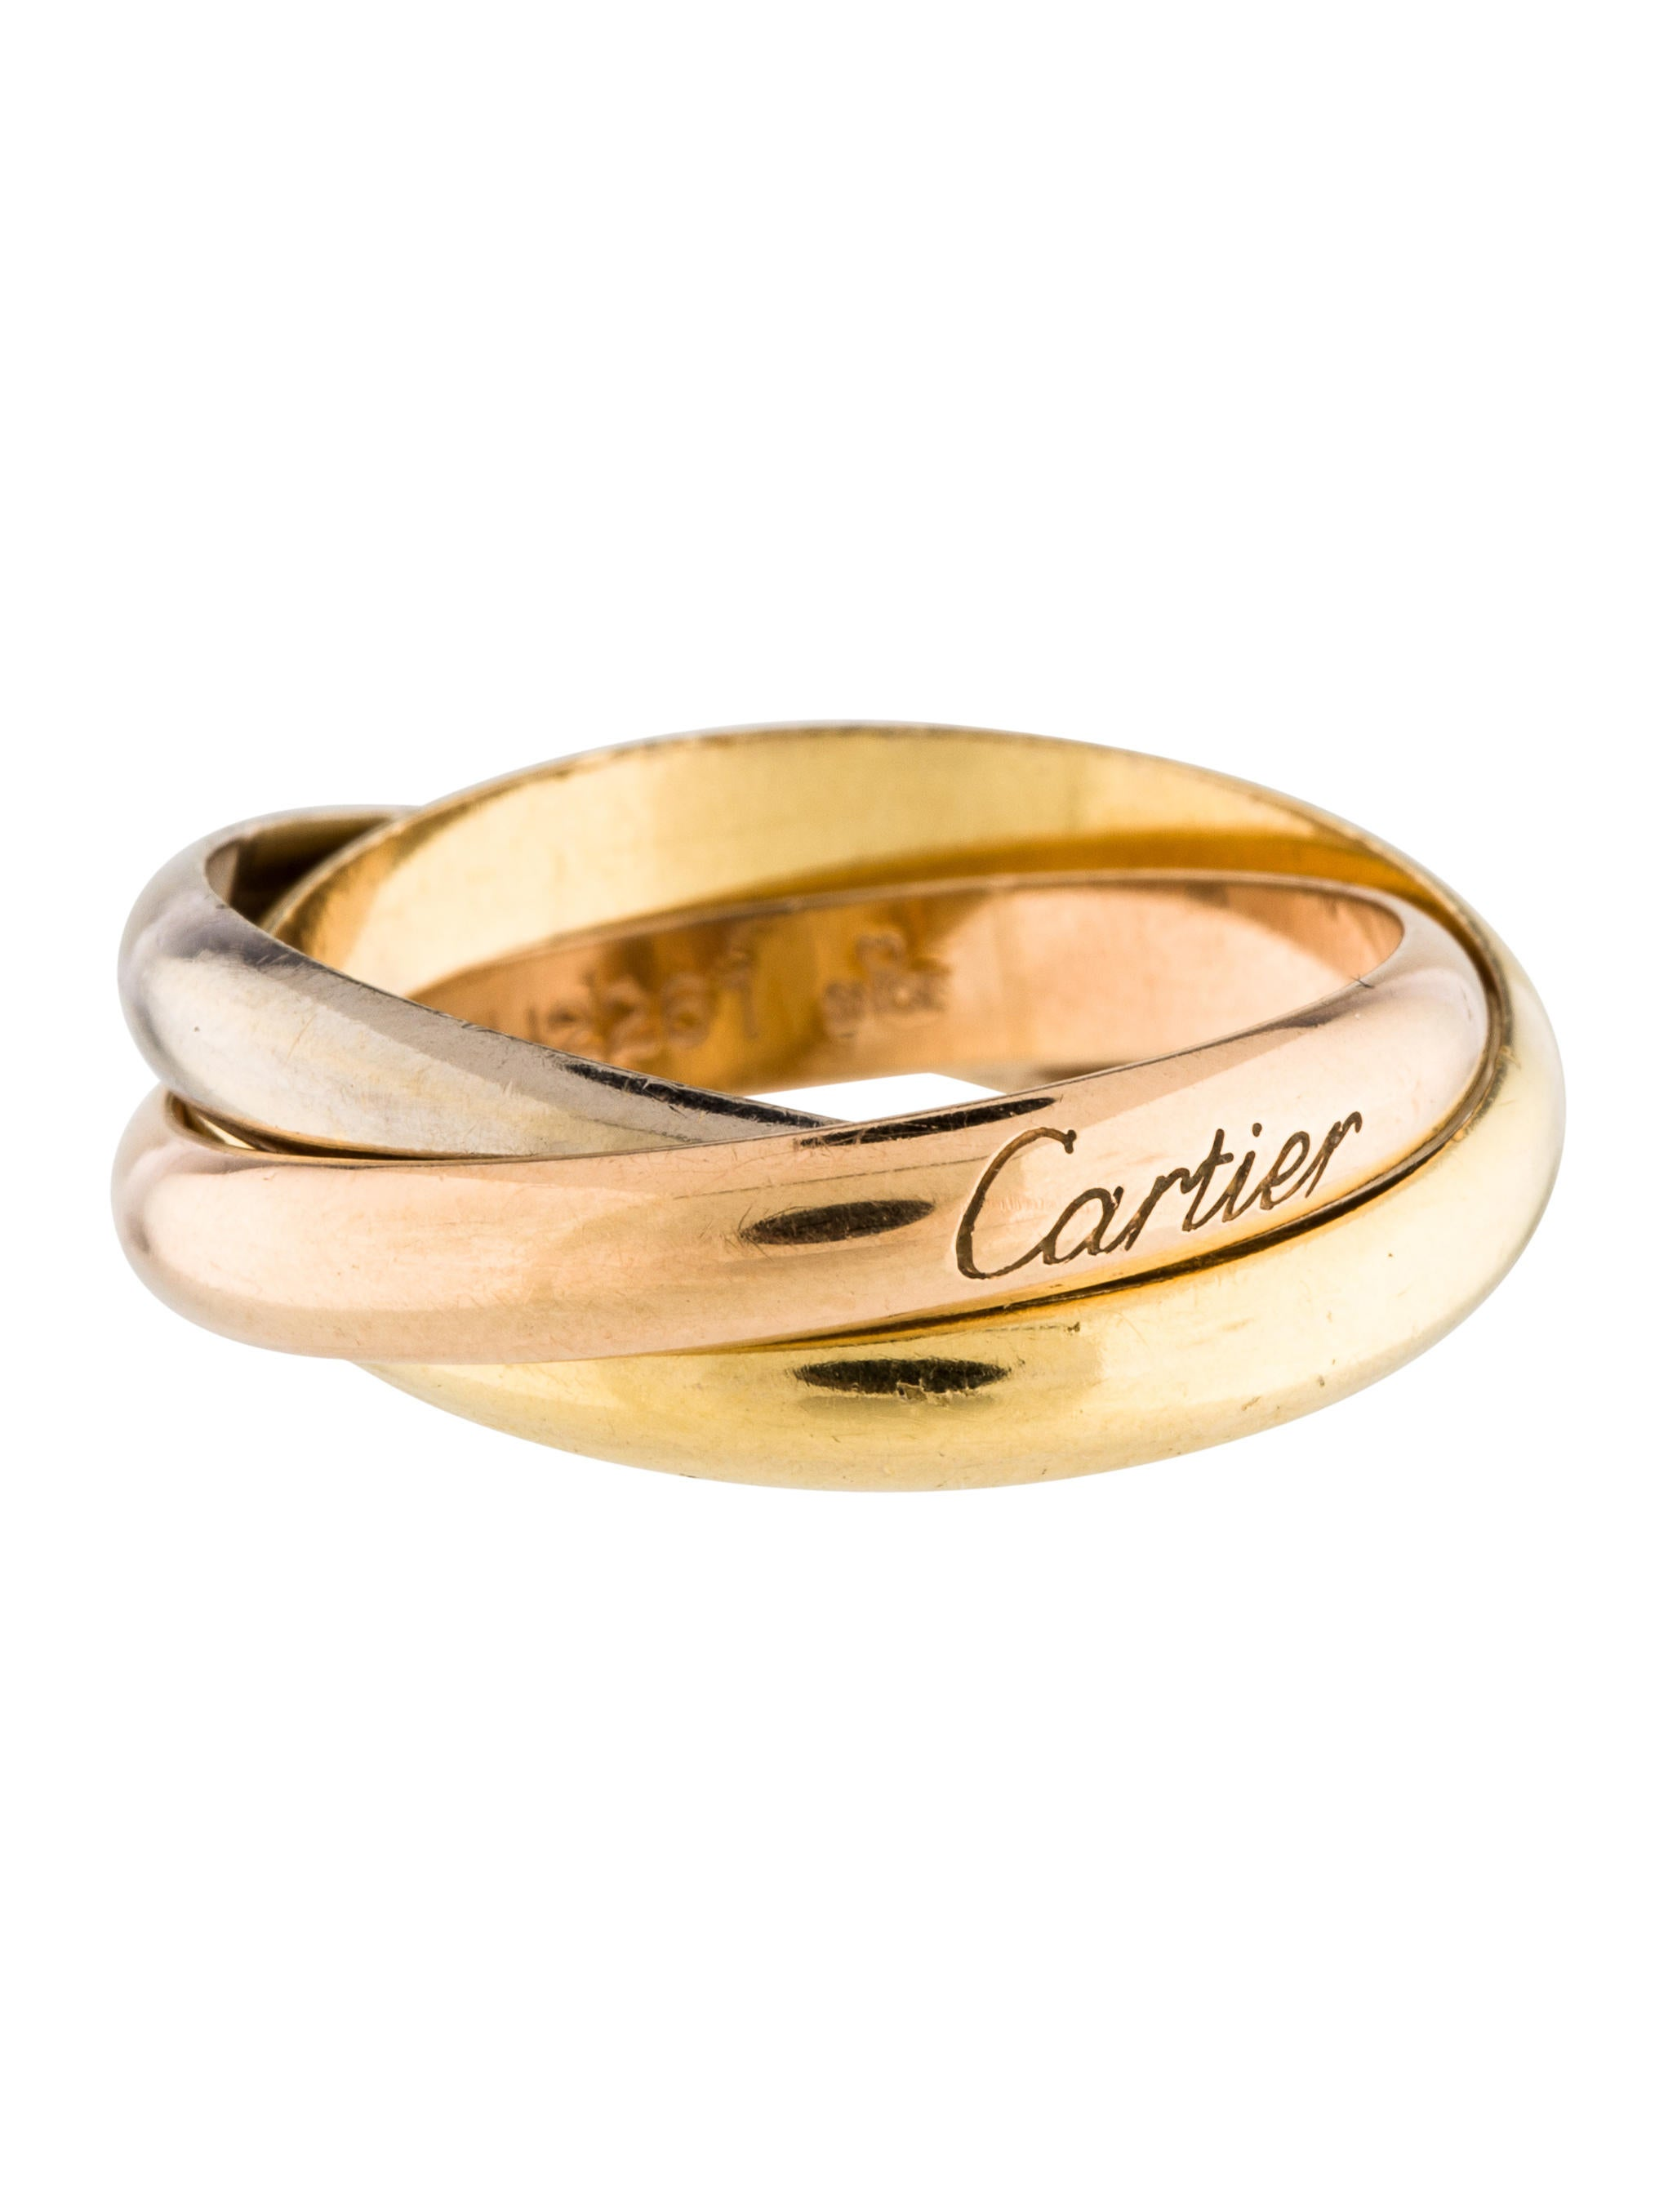 cartier trinity de cartier ring rings crt33330 the. Black Bedroom Furniture Sets. Home Design Ideas